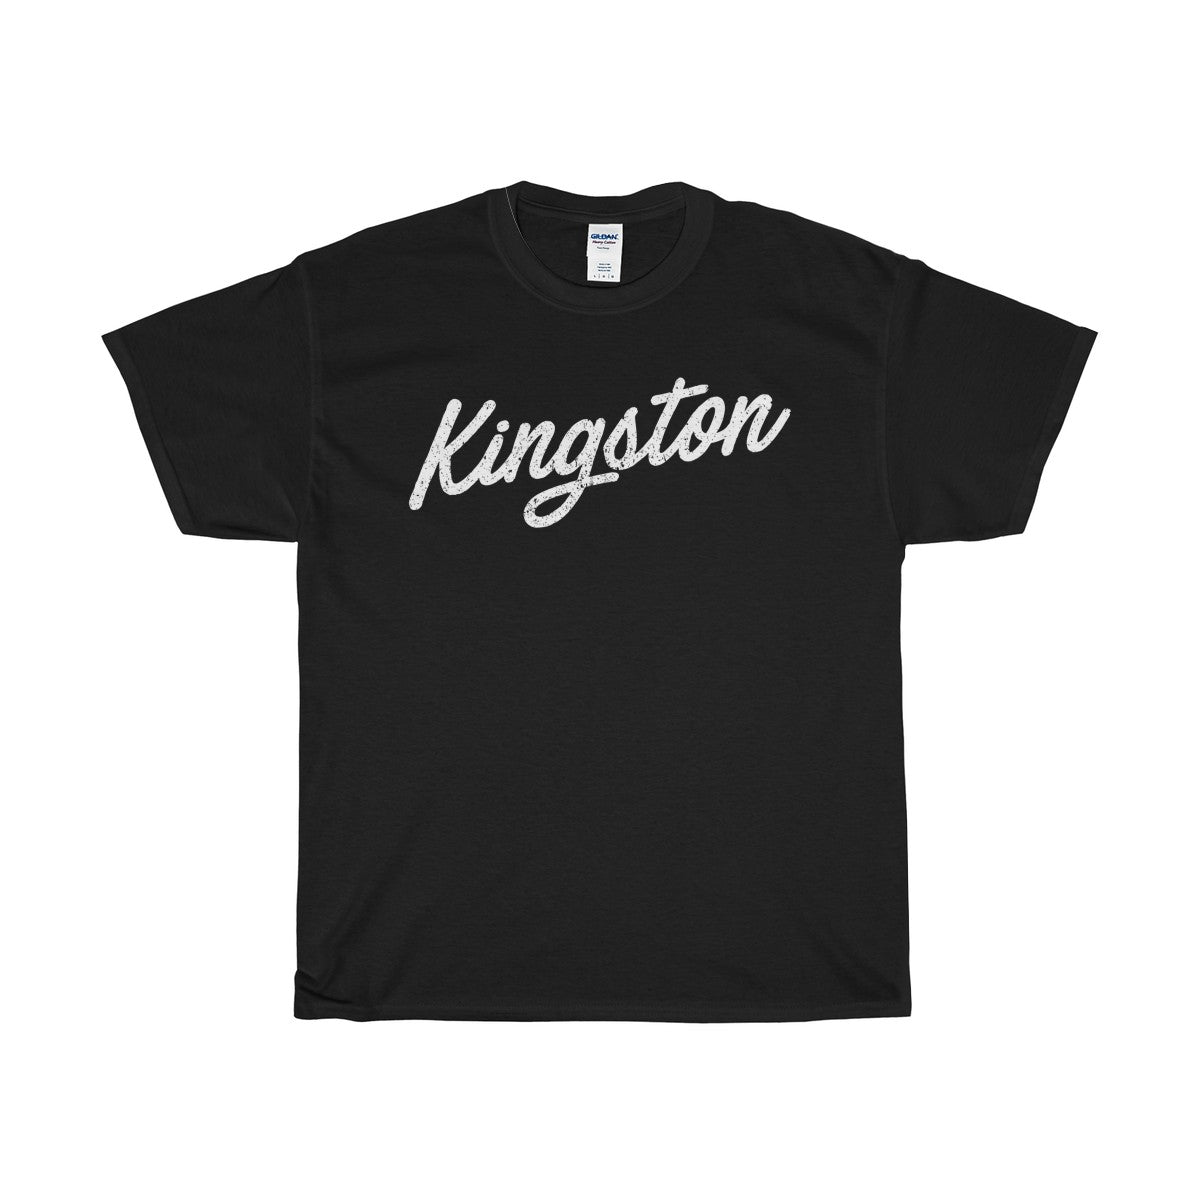 Kingston Scripted T-Shirt